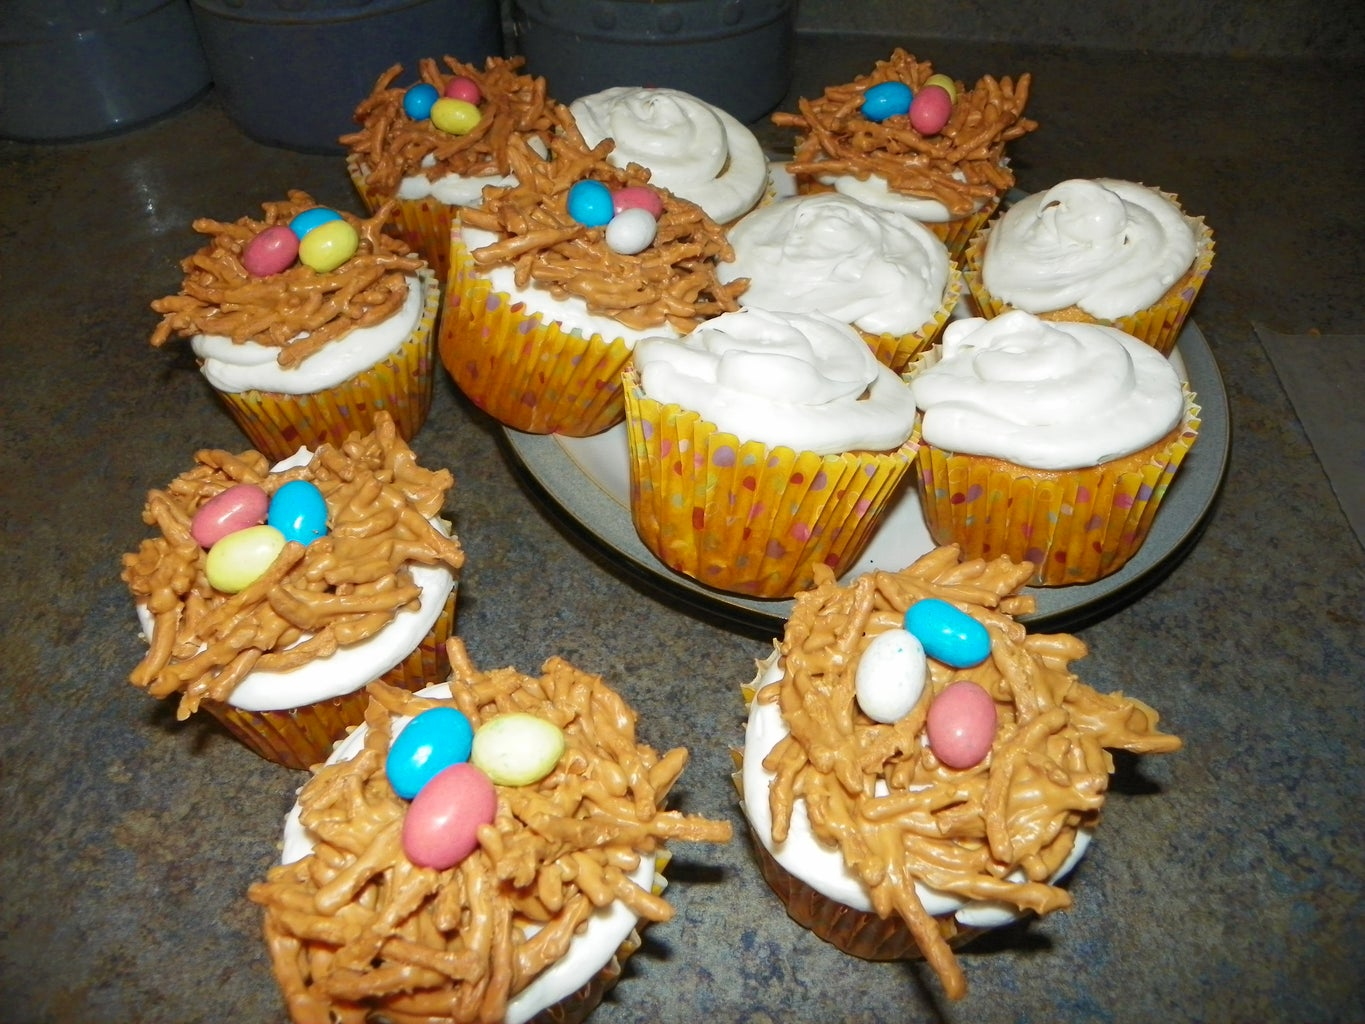 Place Bird Nests on Cupcakes